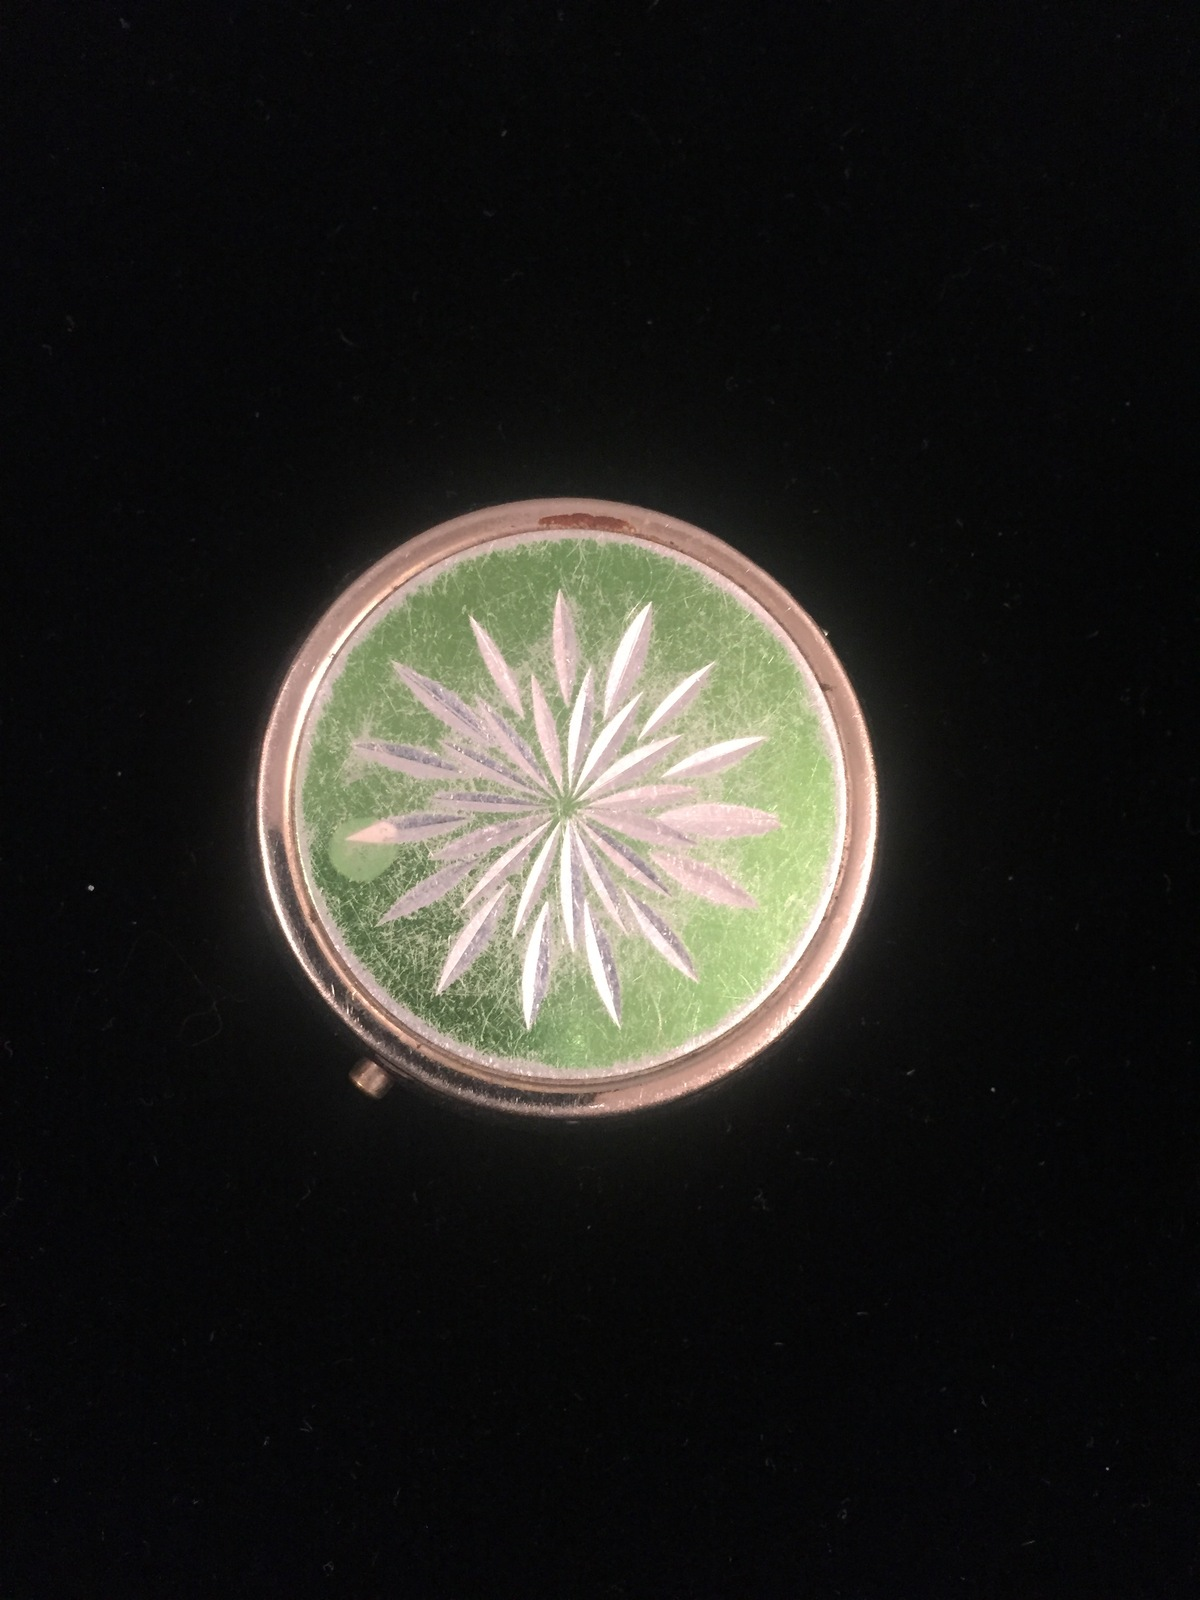 Vintage 50s Pill Box compact with etched starburst on top